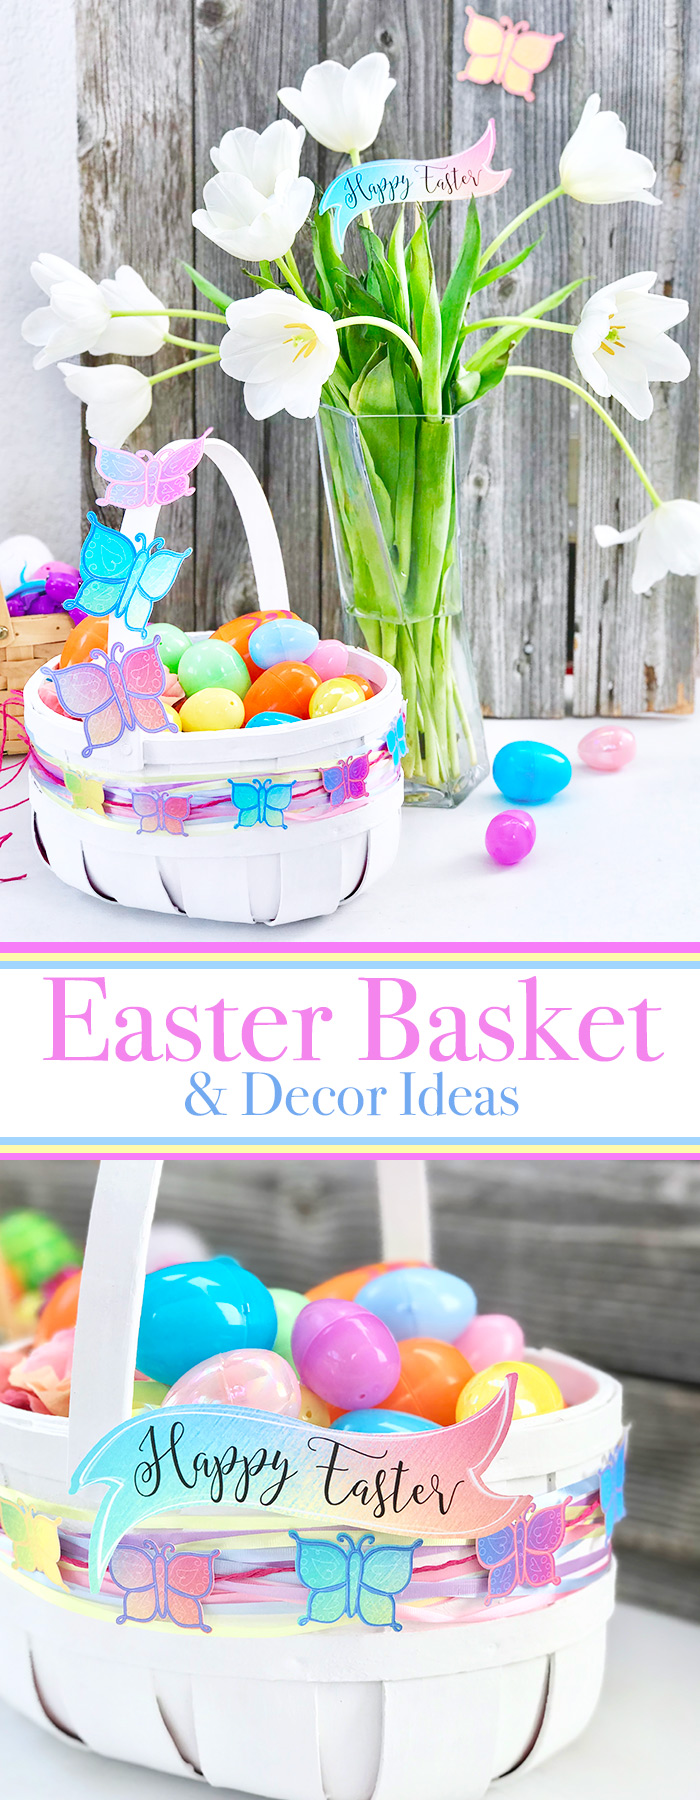 Diy easter basket and decor ideas the country chic cottage love this diy easter basket and looking for more ideas try the links below negle Choice Image